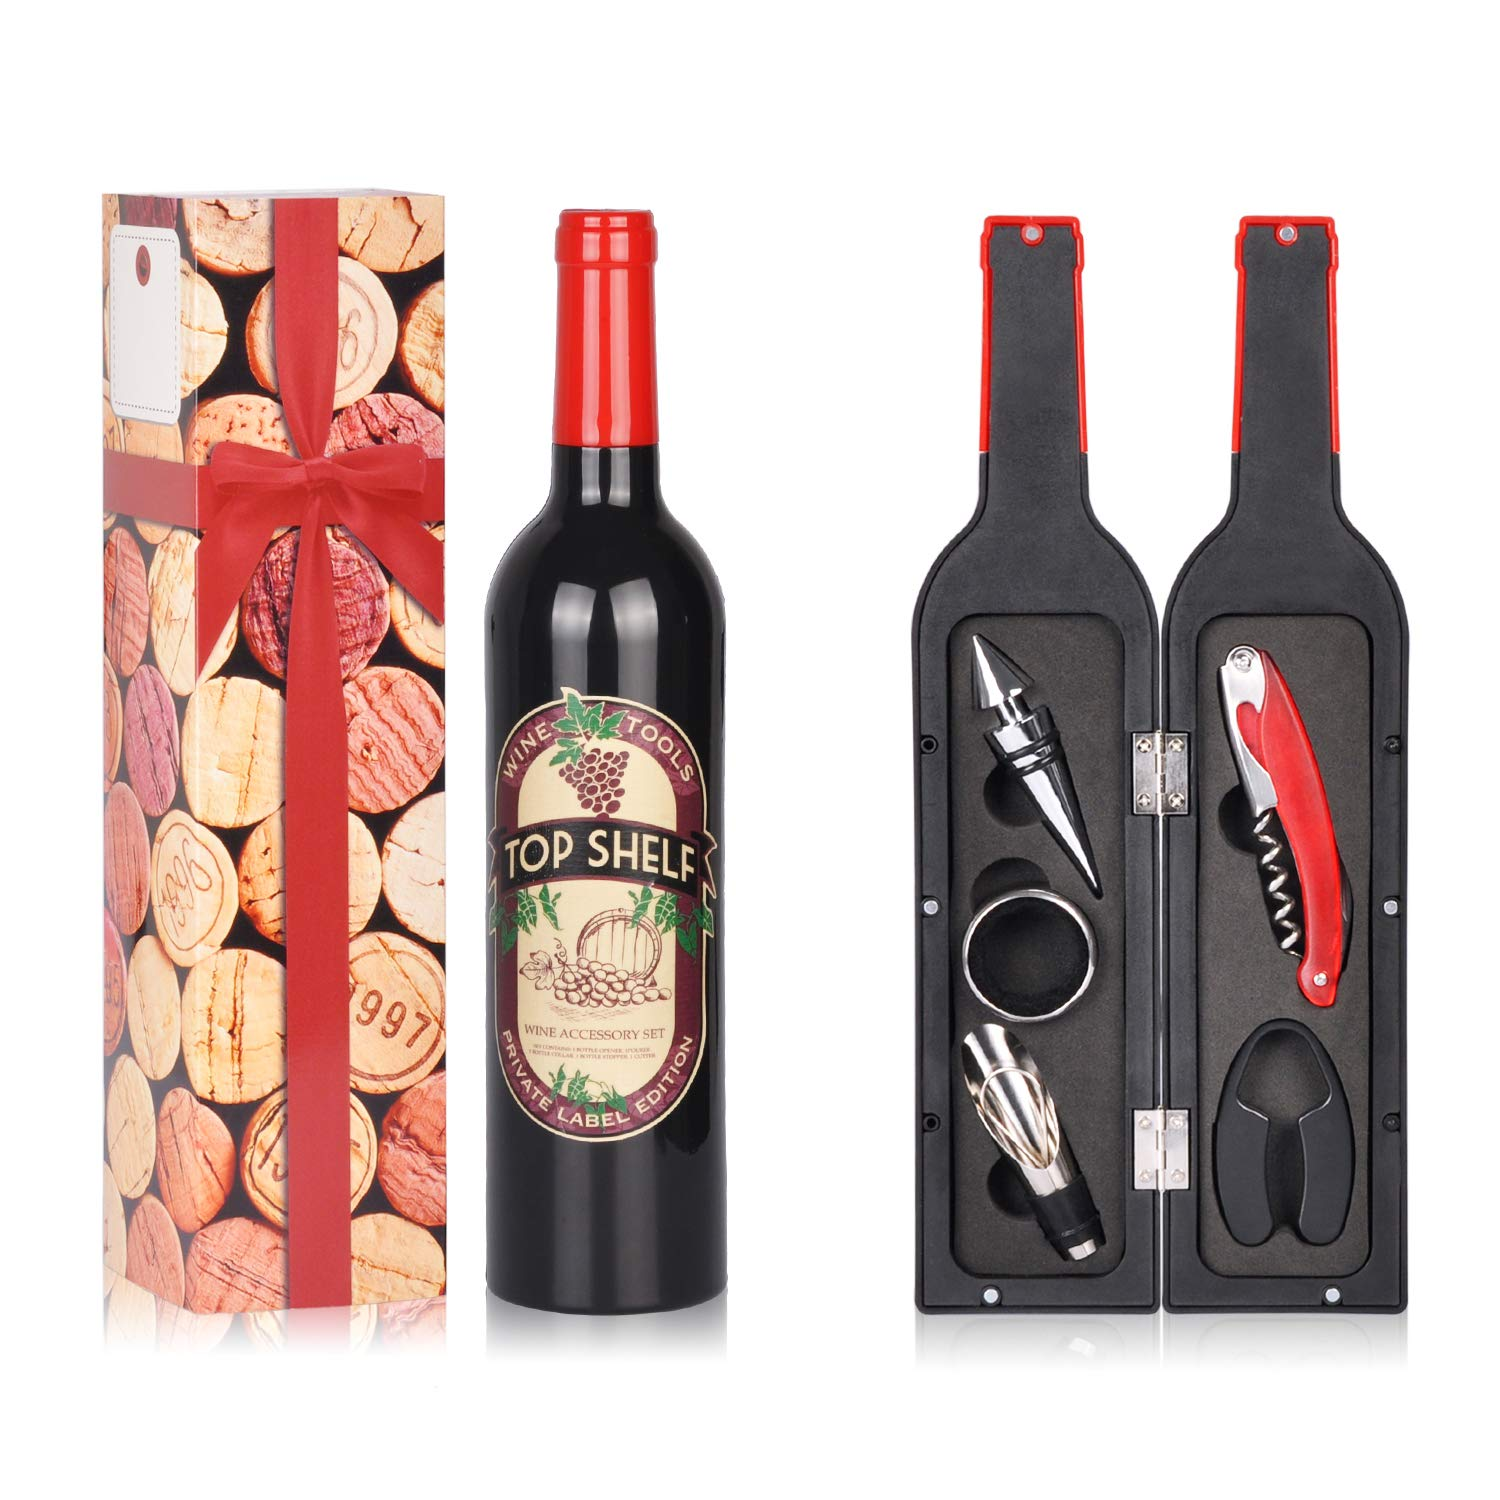 Wine Accessories Gift Set - 5 Pcs Deluxe Wine Corkscrew Opener Sets Bottle Shape in Elegant Gift Box Great Wine Gifts Idea for Wine Lovers Friends ...  sc 1 st  Amazon.com & Amazon.com | Wine Accessories Gift Set - 5 Pcs Deluxe Wine Corkscrew ...